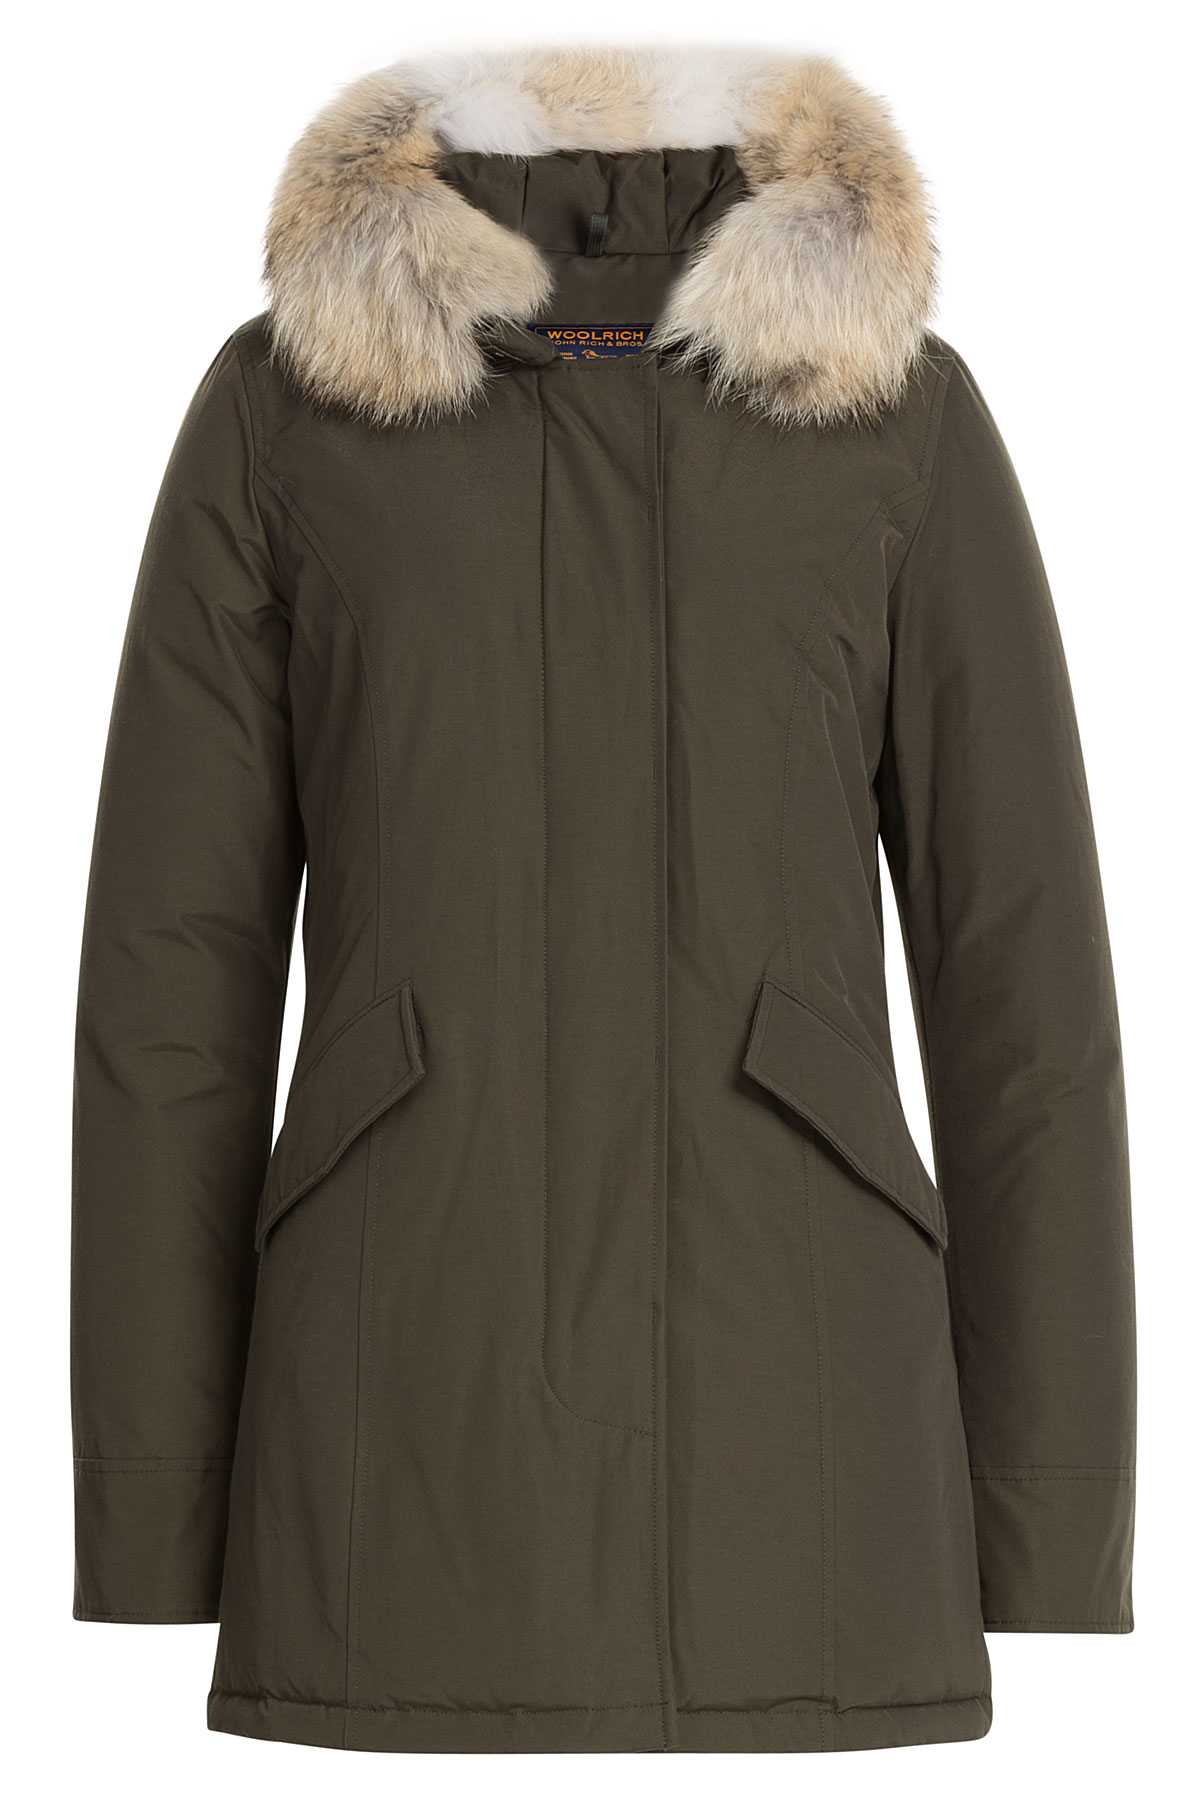 Woolrich Arctic Parka Jacket With Furry Hood